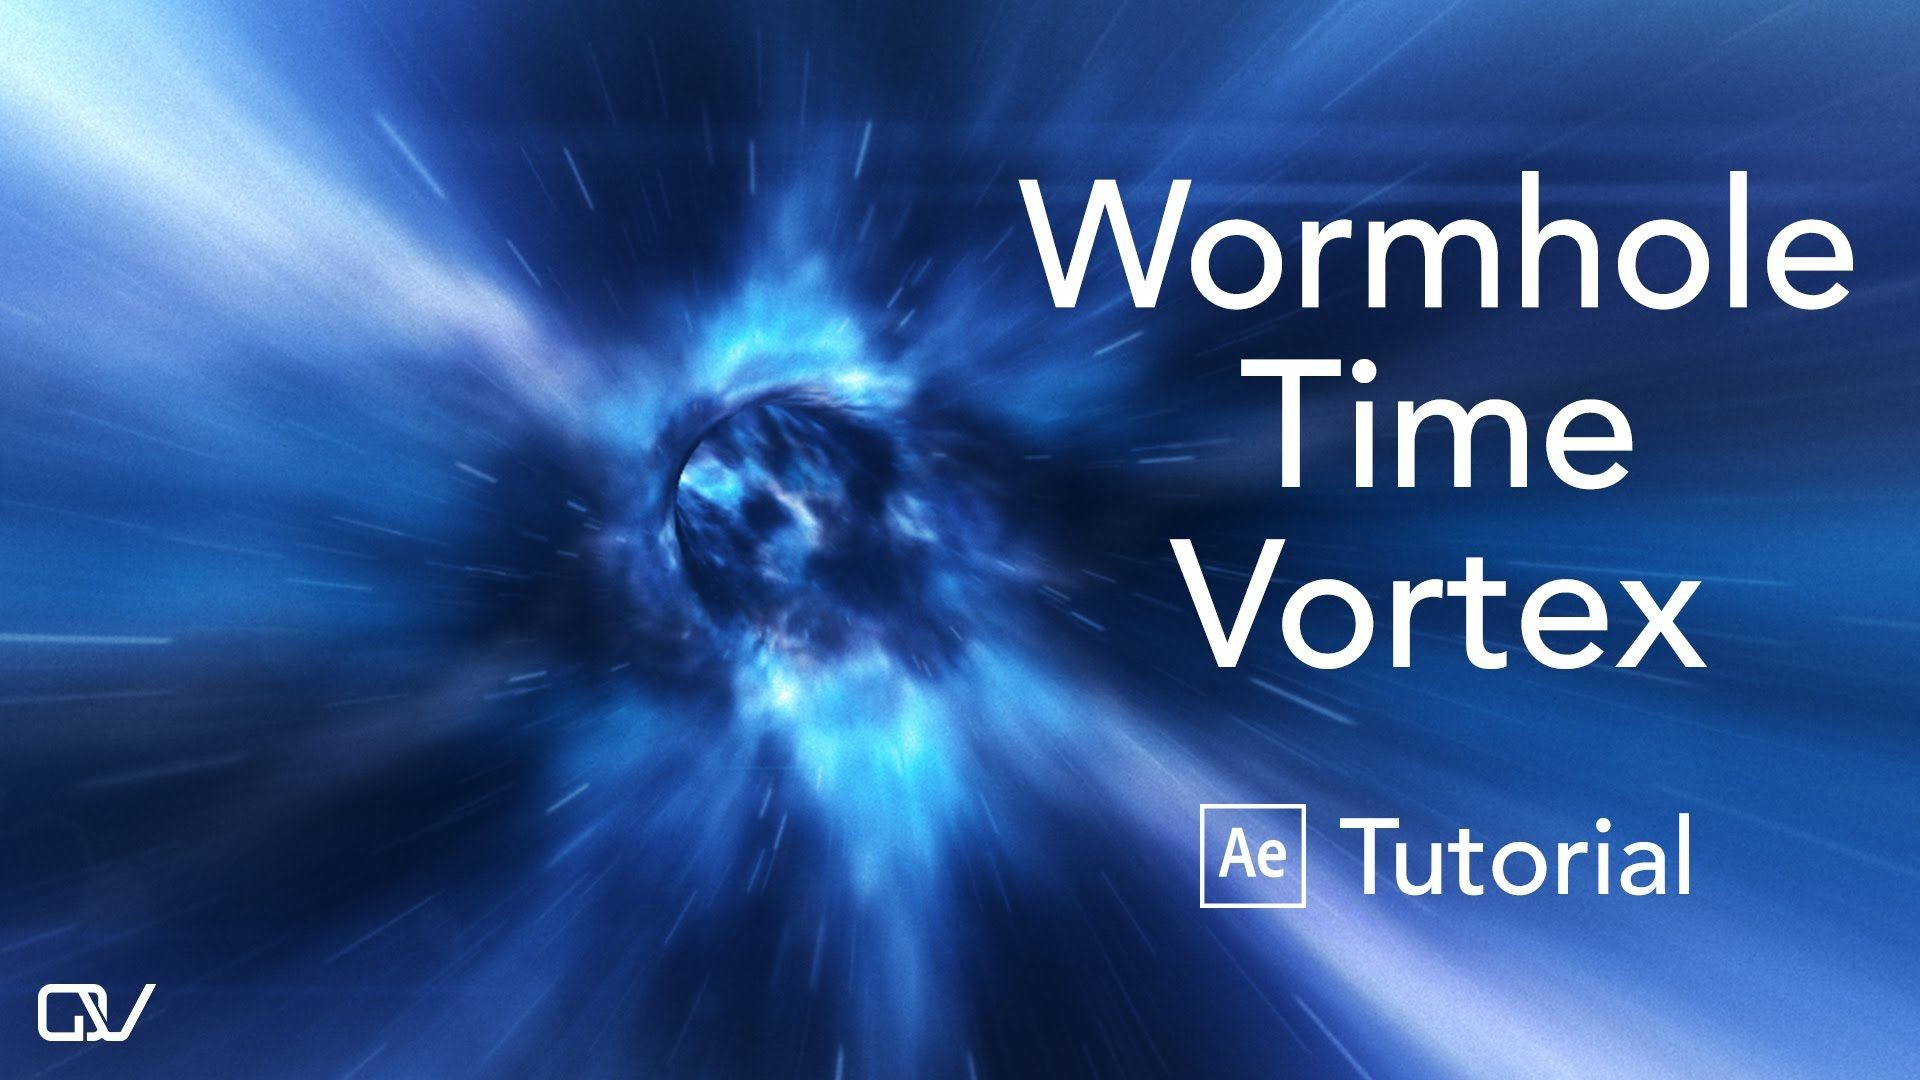 1920x1080 Wormhole Time Vortex - After Effects & Element 3D Tutorial